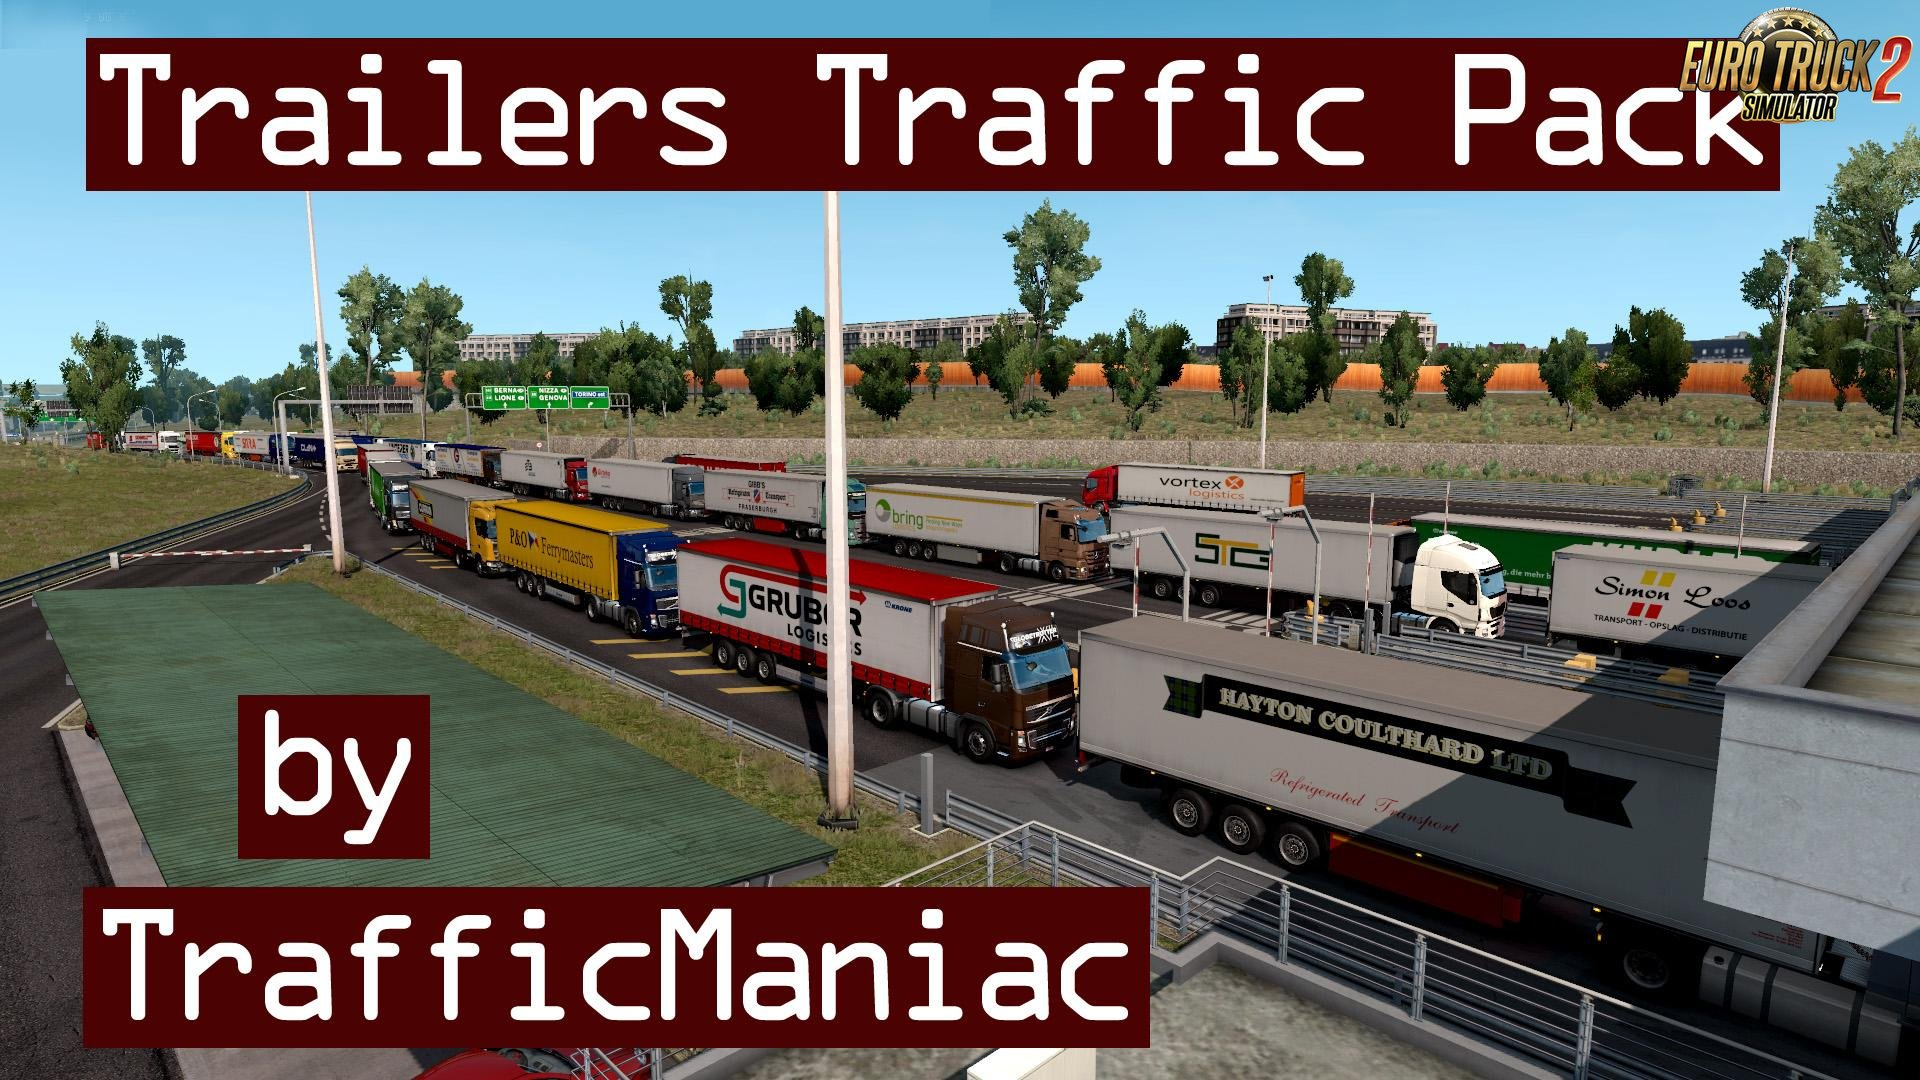 Trailers Traffic Pack v1.0 by TrafficManiac